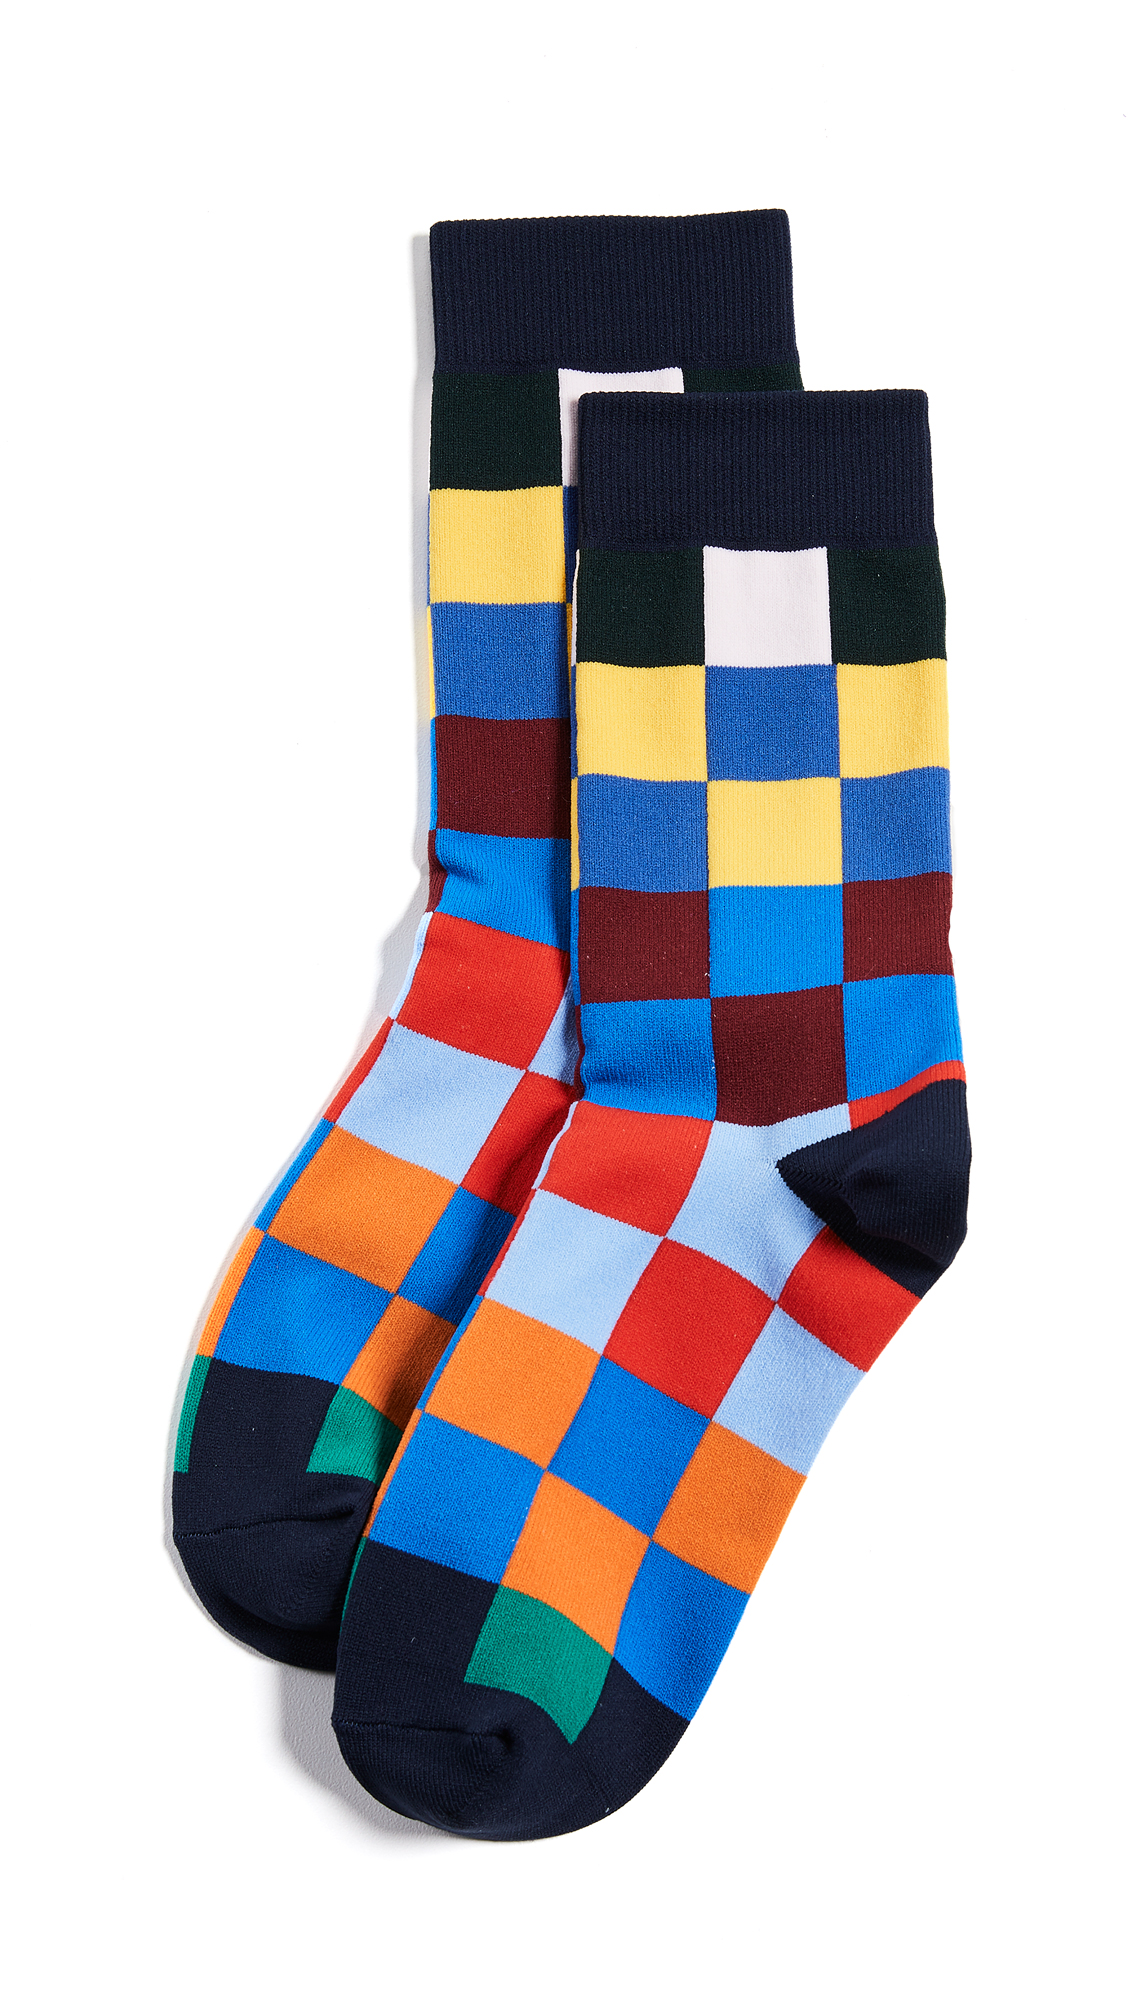 Tory Sport Checker Socks In Multi